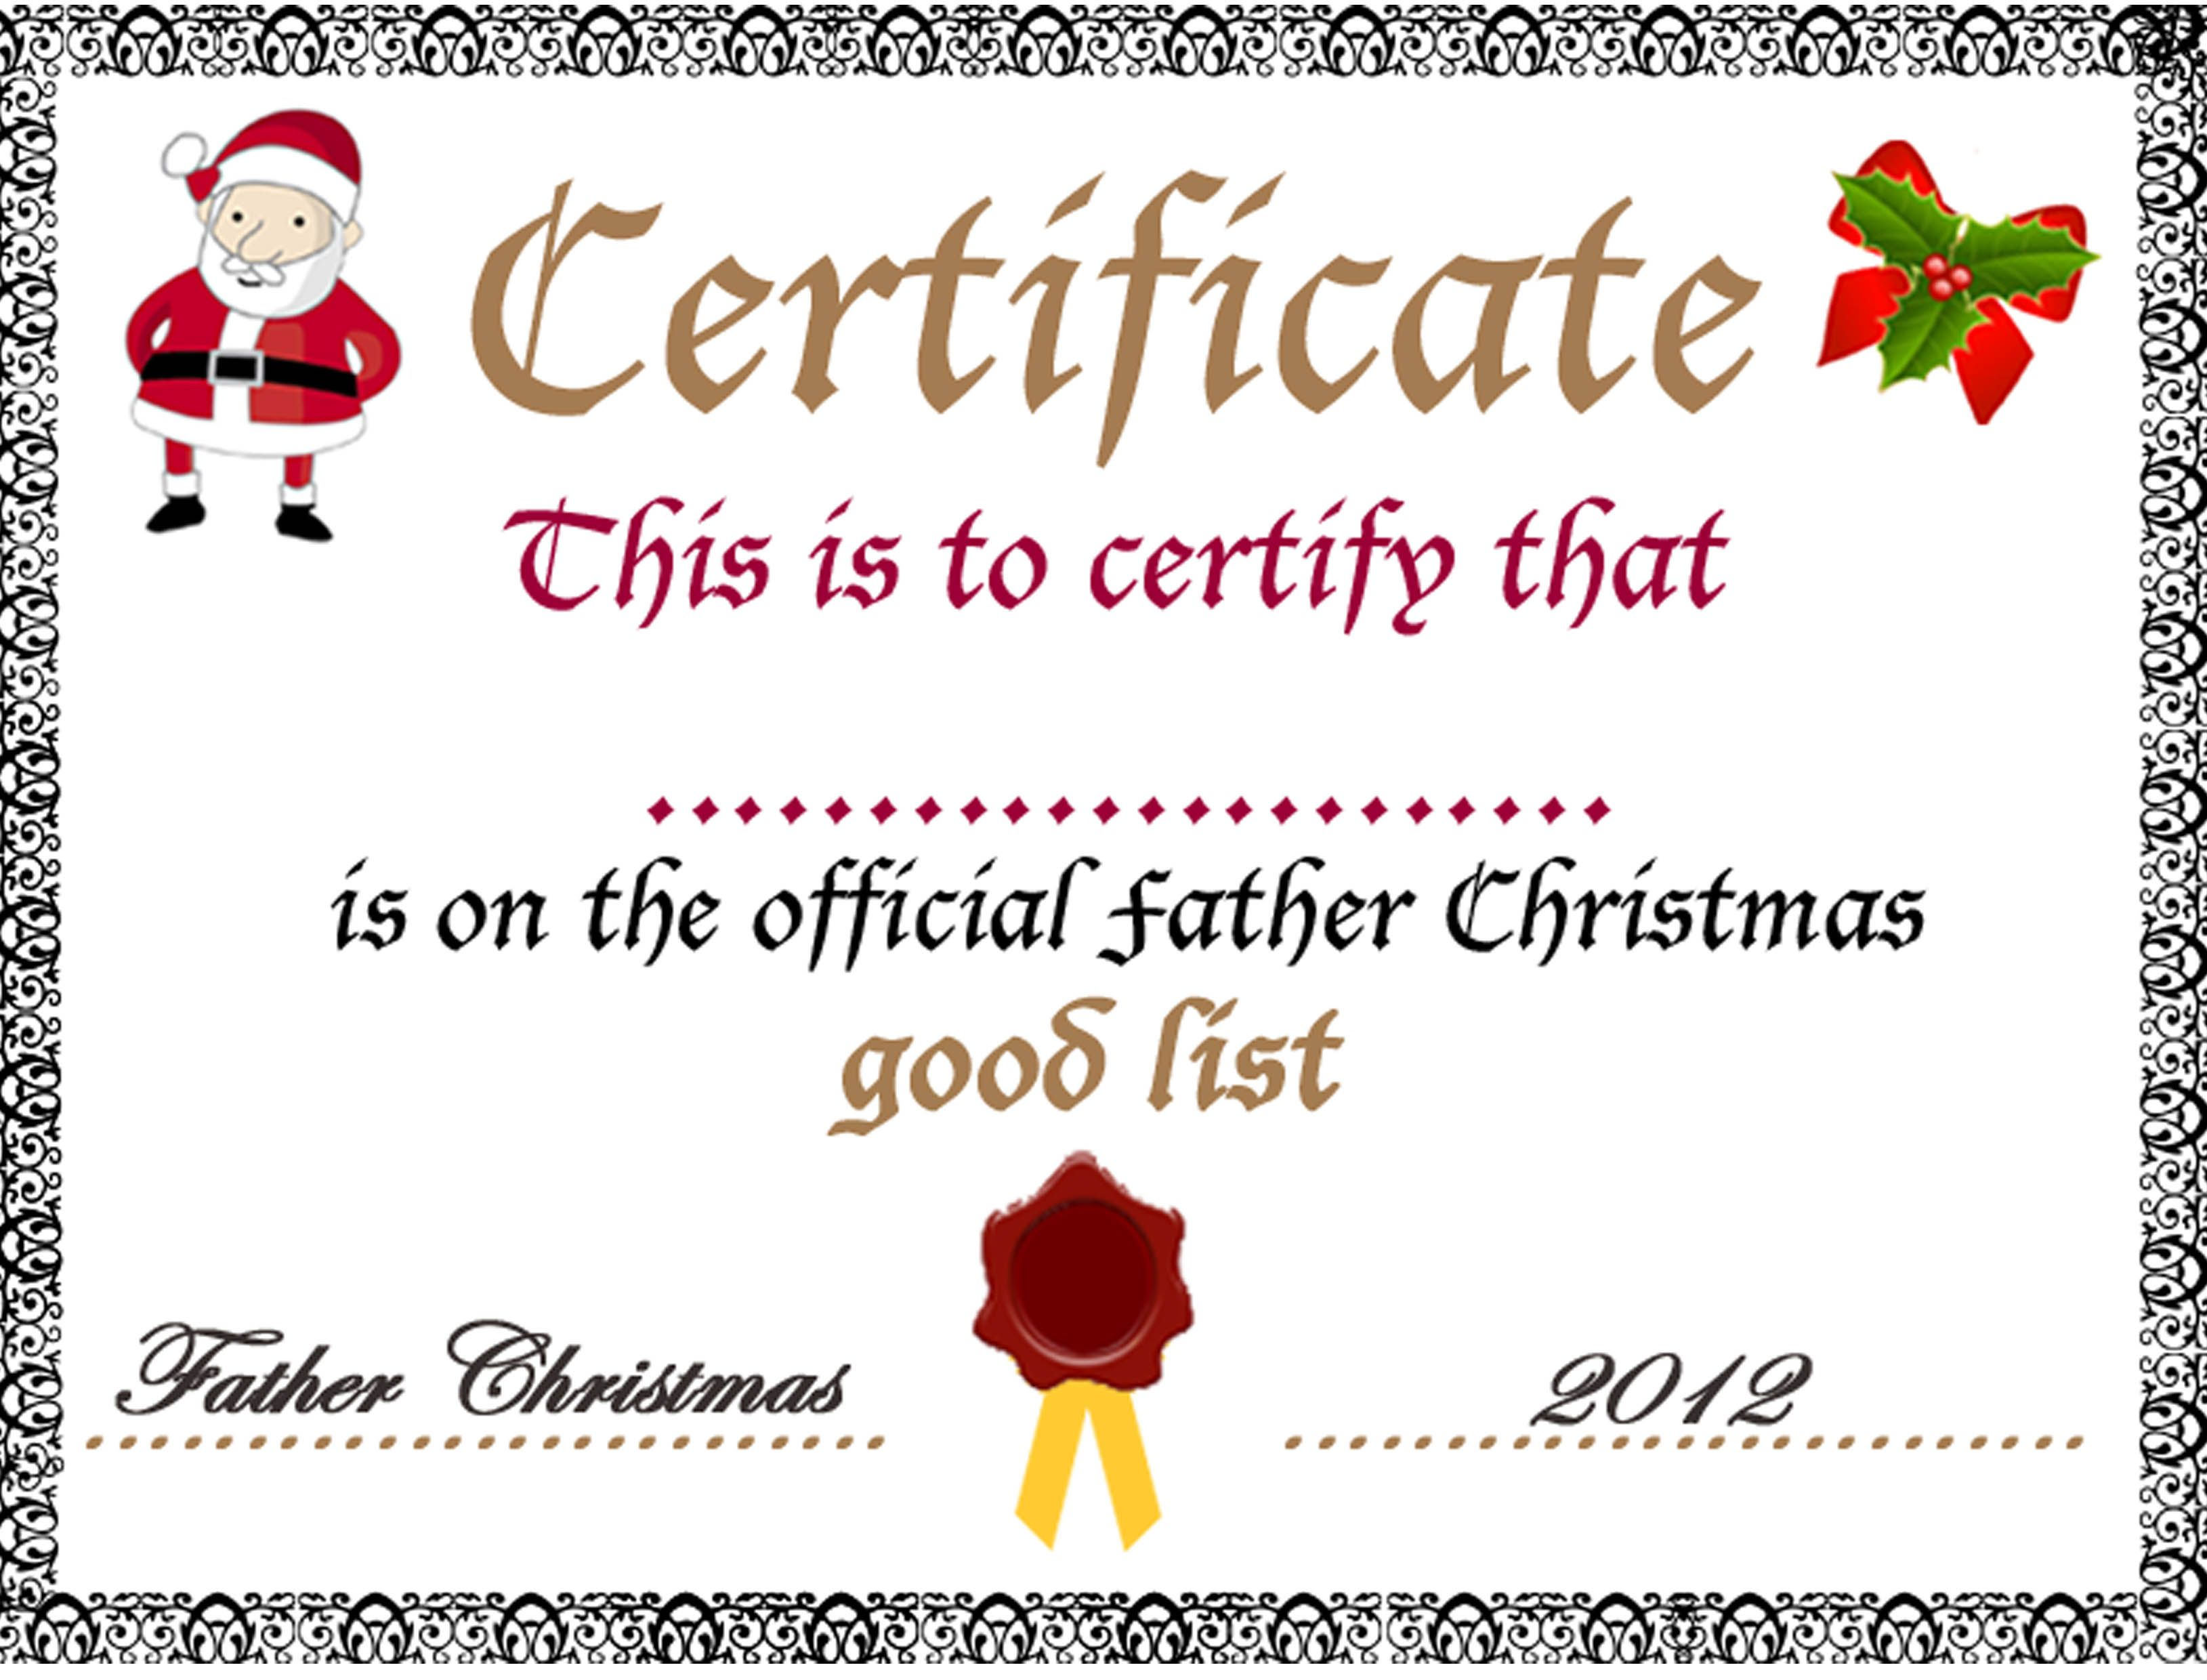 Good list certificate from father christmas free printable good list certificate from father christmas free printable template 1betcityfo Image collections